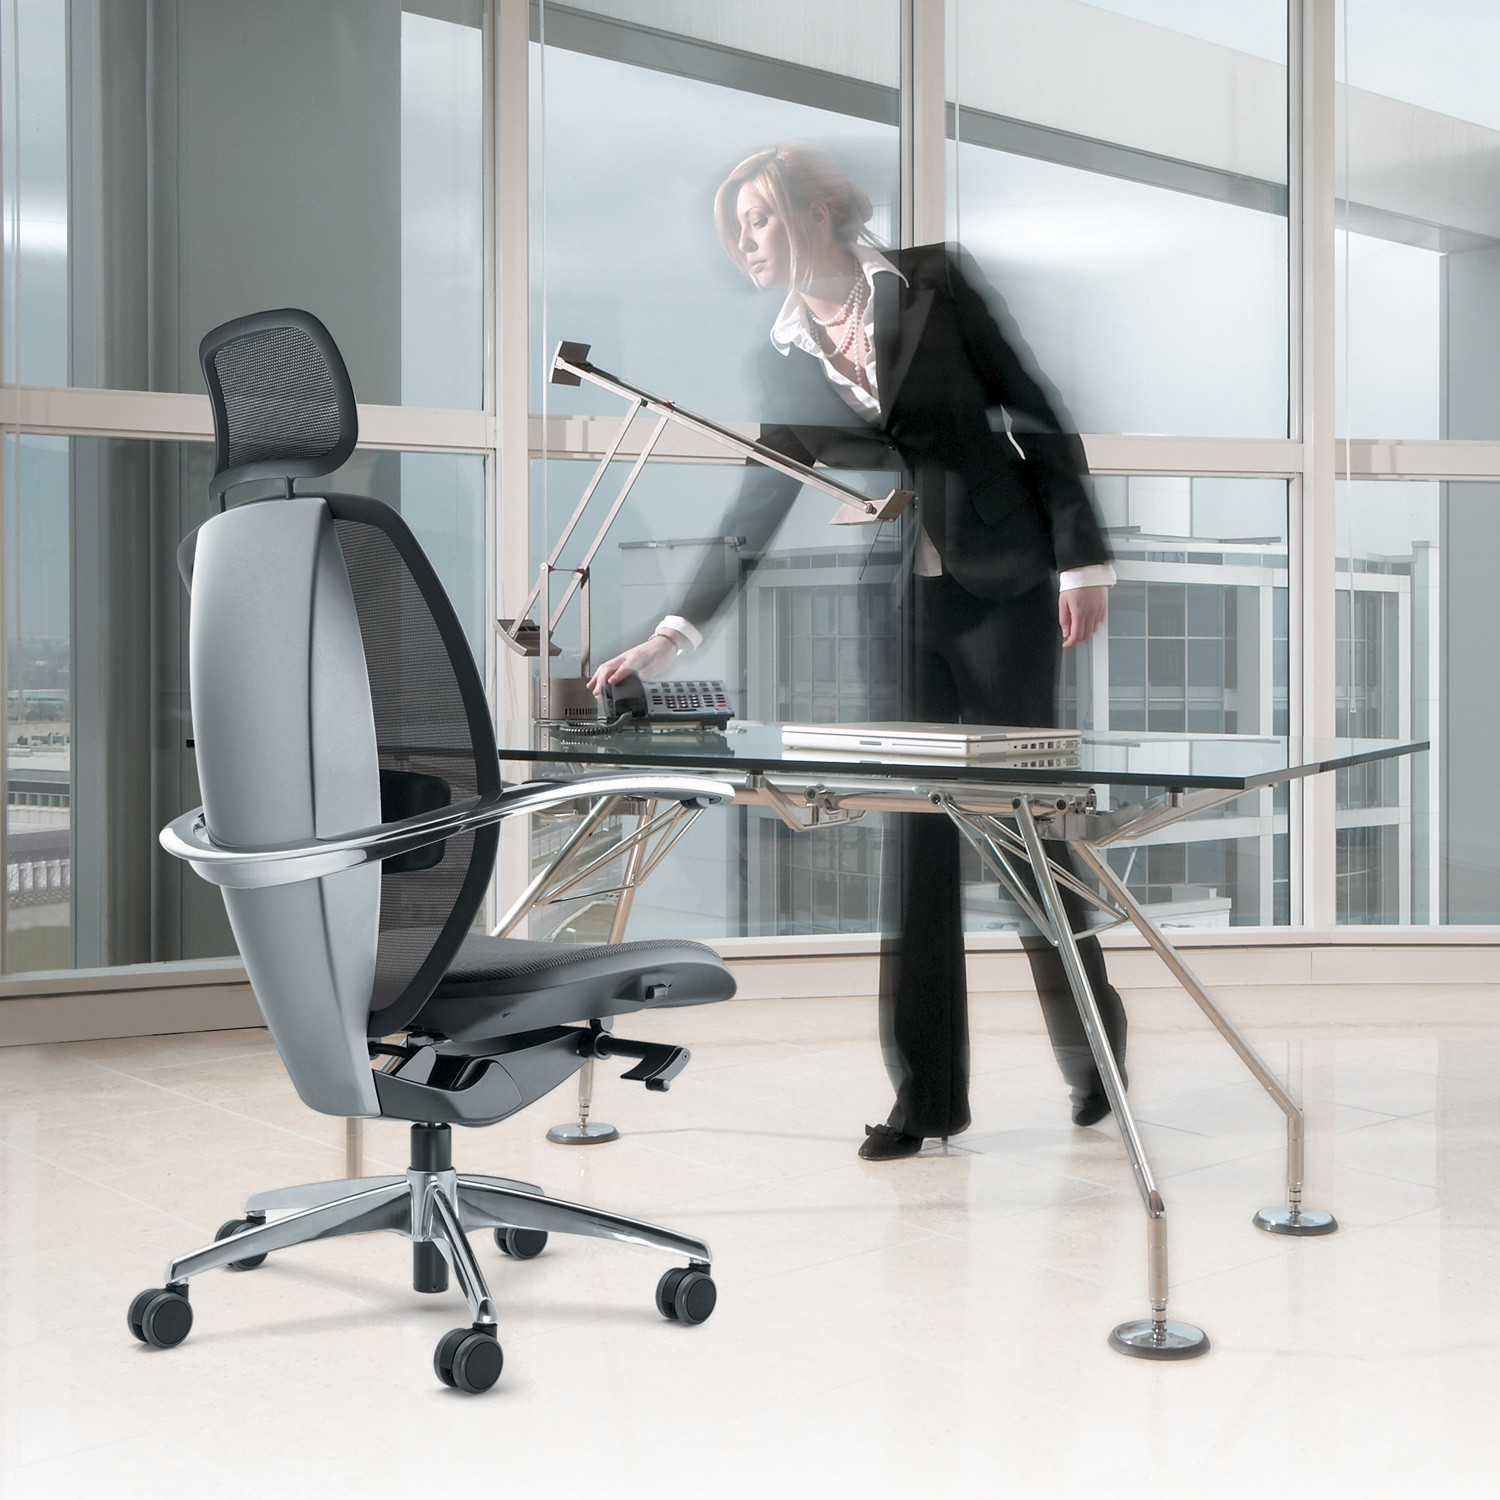 Xten Office Chair designed by Paolo Pininfarina